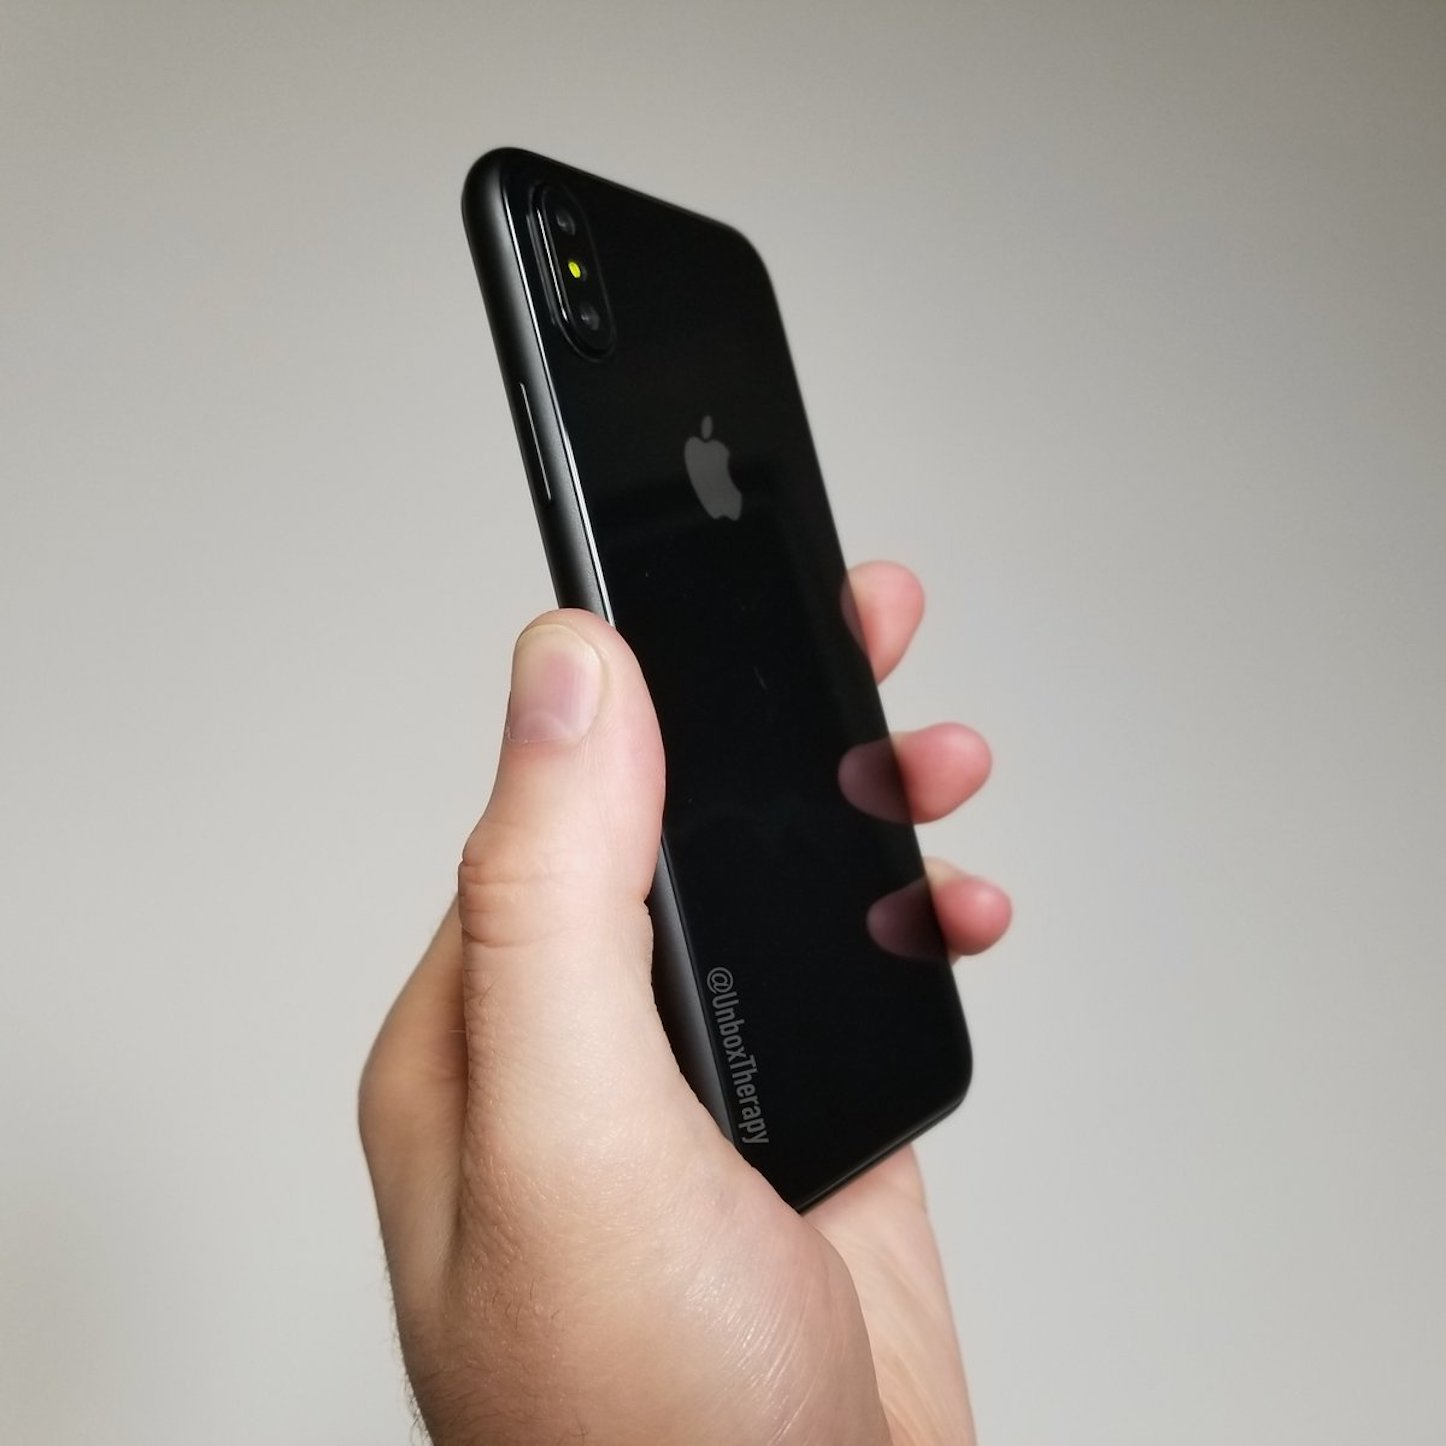 iphone8-mockup-unbox-therapy.jpg